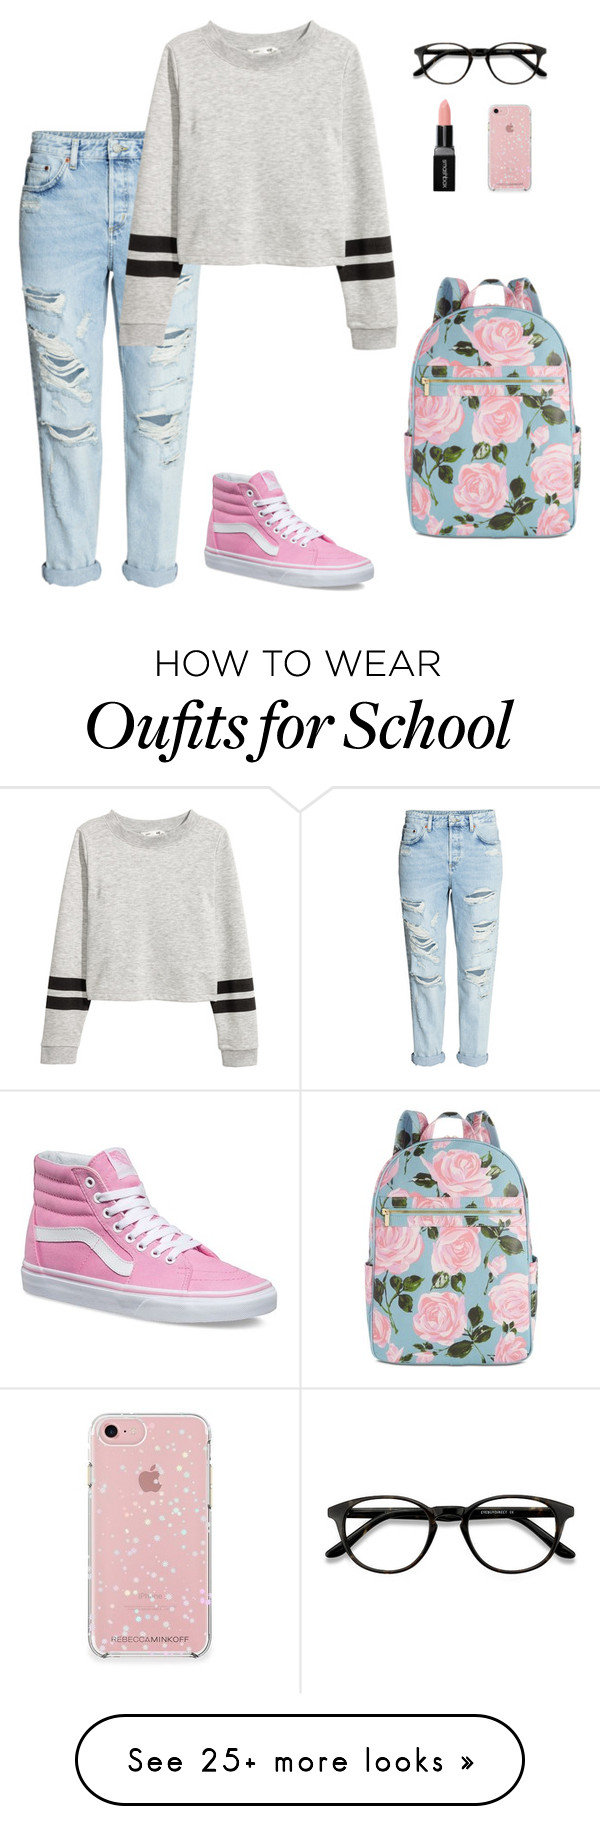 """""""Back to School Style"""" by peppermintpanda64 on Polyvore featuring H&M, Vans, EyeBuyDirect.com, Rebecca Minkoff, ban.do, Smashbox and vans"""